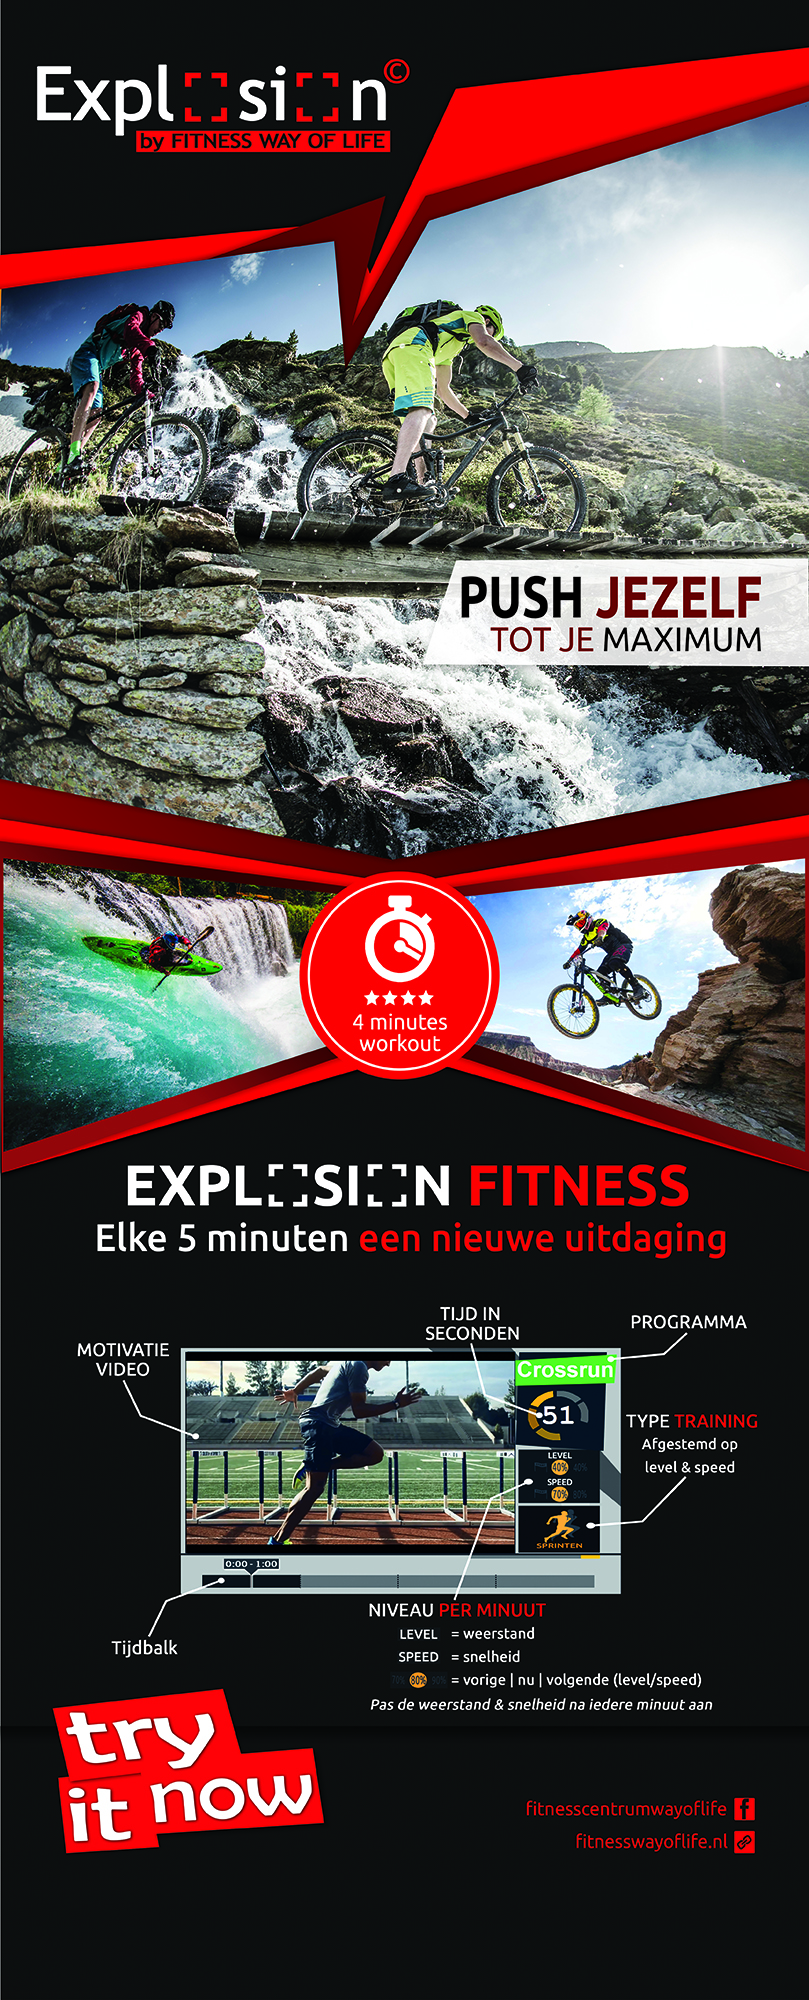 EXPLOSION Fitness by Way of Life